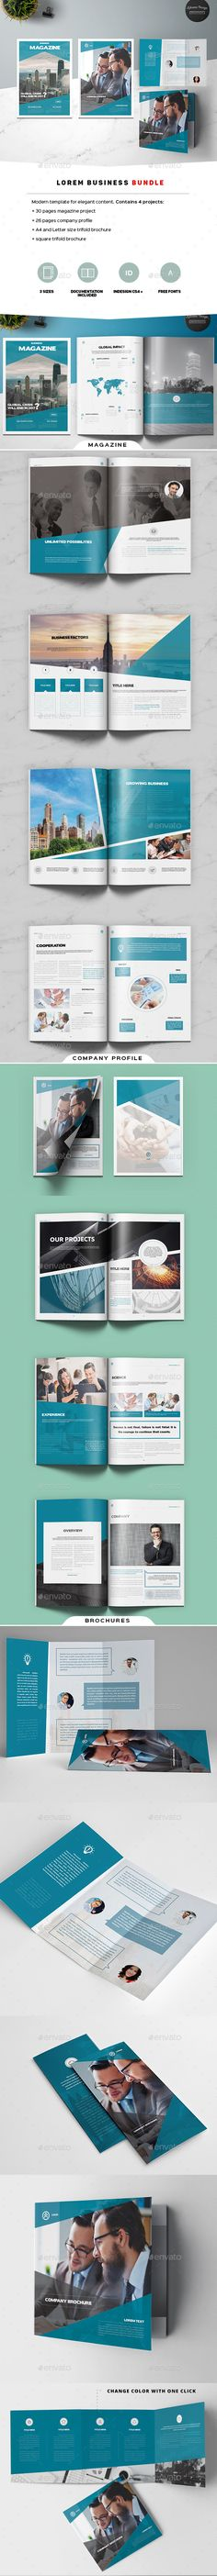 Lorem Business Bundle by Kahuna_Design Lorem Business BundleLorem Business Bundle contains 4 independent projects. Universal and elegant design gives you an opportunity